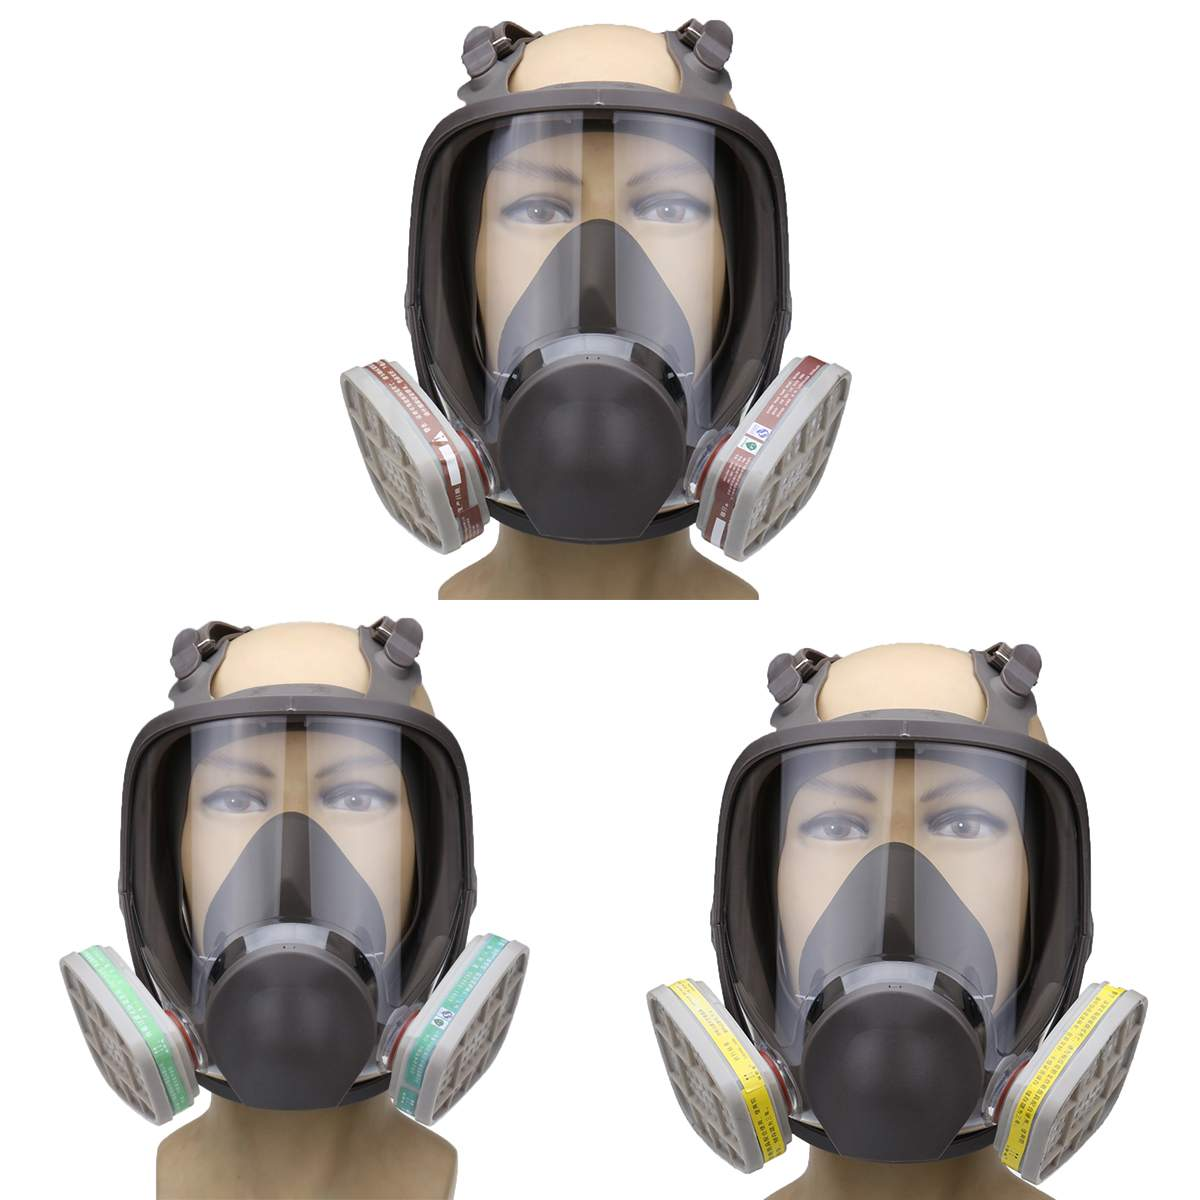 SAFURANCE Emergency Survival Safety Respiratory Dust Gas Mask 2X Particulate Cotton Filter Workplace Safety Supplies Protective 10 pcs a lot 3803 dust mask cotton filter for anti dust mask workplace safety supplies new arrival excellent quality